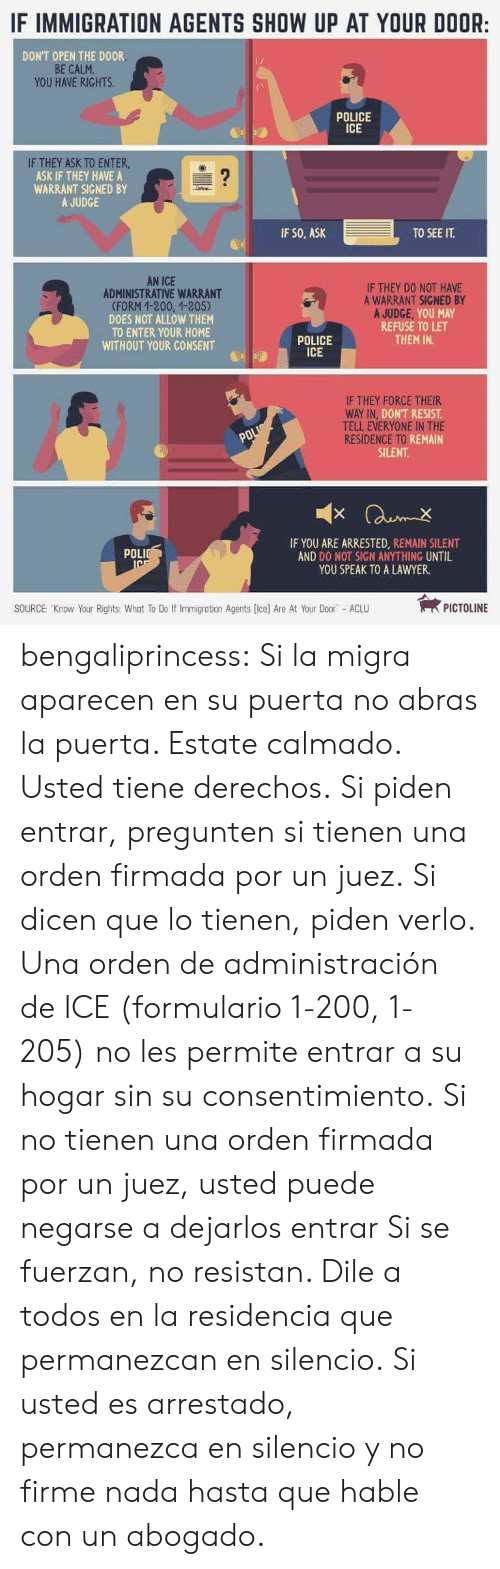 Aclu: IF IMMIGRATION AGENTS SHOW UP AT YOUR DOOR:  DON'T OPEN THE DOOR  BE CALM  YOU HAVE RIGHTS  POLICE  ICE  IF THEY ASK TO ENTER  ASK IF THEY HAVE A  WARRANT SIGNED BY  A JUDGE  IF SO, ASK  TO SEE IT.  AN ICE  ADMINISTRATIVE WARRANT  (FORM 1-200, 1-205)  DOES NOT ALLOW THEM  TO ENTER YOUR HOME  WITHOUT YOUR CONSENT  IF THEY D0 NOT HAVE  A WARRANT SIGNED BY  REFUSE TO LET  THEM IN.  POLICE  ICE  IF THEY FORCE THEIR  DON'T RESIST  TELL EVERYONE IN THE  iki REMAIN  SILENT  RESIDENCE TO R  IF YOU ARE ARRESTED, REMAIN SILENT  AND DO NOT SIGN ANYTHING UNTIL  YOU SPEAK TO A LAWYER.  POLI  SOURCE: Know Your Rights: Whot To Do If Immigration Agents (Ice) Are At Your Door ACLU  PICTOLINE bengaliprincess:  Si la migra aparecen en su puerta no abras la puerta. Estate calmado. Usted tiene derechos. Si piden entrar, pregunten si tienen una orden firmada por un juez. Si dicen que lo tienen, piden verlo. Una orden de administración de ICE (formulario 1-200, 1-205) no les permite entrar a su hogar sin su consentimiento. Si no tienen una orden firmada por un juez, usted puede negarse a dejarlos entrar Si se fuerzan, no resistan. Dile a todos en la residencia que permanezcan en silencio. Si usted es arrestado, permanezca en silencio y no firme nada hasta que hable con un abogado.